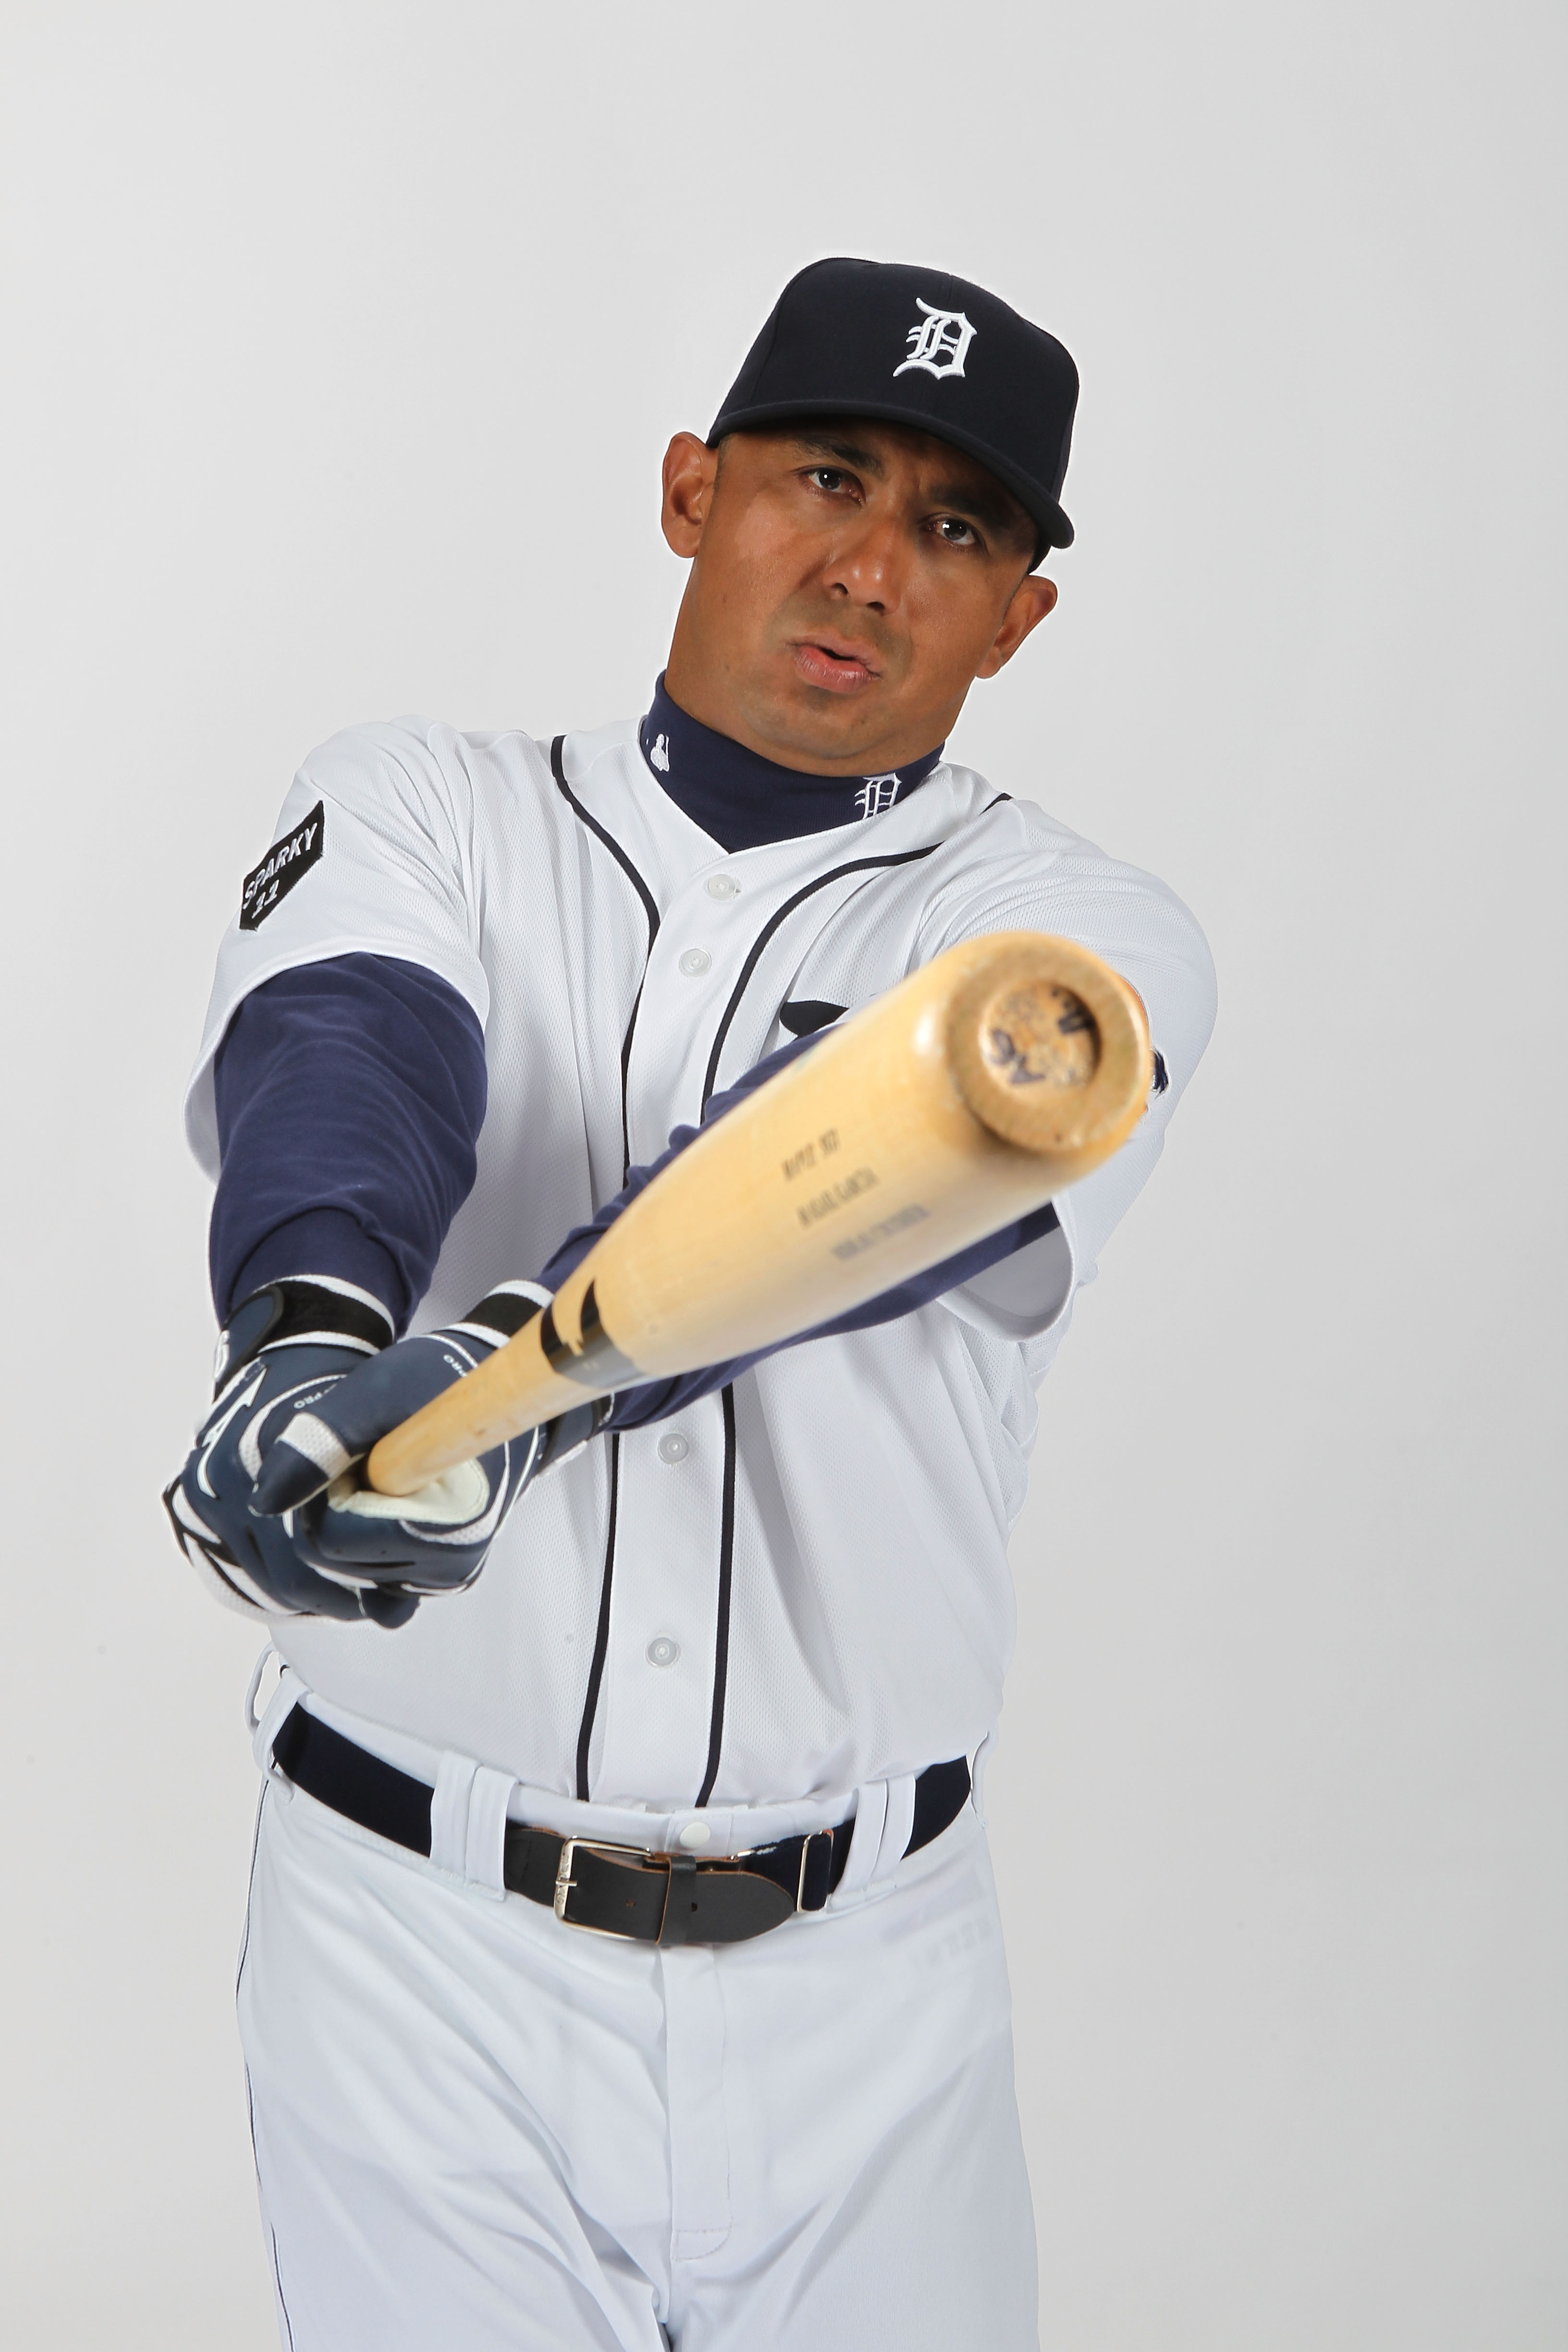 LAKELAND, FL - FEBRUARY 21:  Carlos Guillen #9 of the Detroit Tigers poses for a portrait during Photo Day on February 21, 2011 at Joker Marchant Stadium in Lakeland, Florida.  (Photo by Nick Laham/Getty Images)